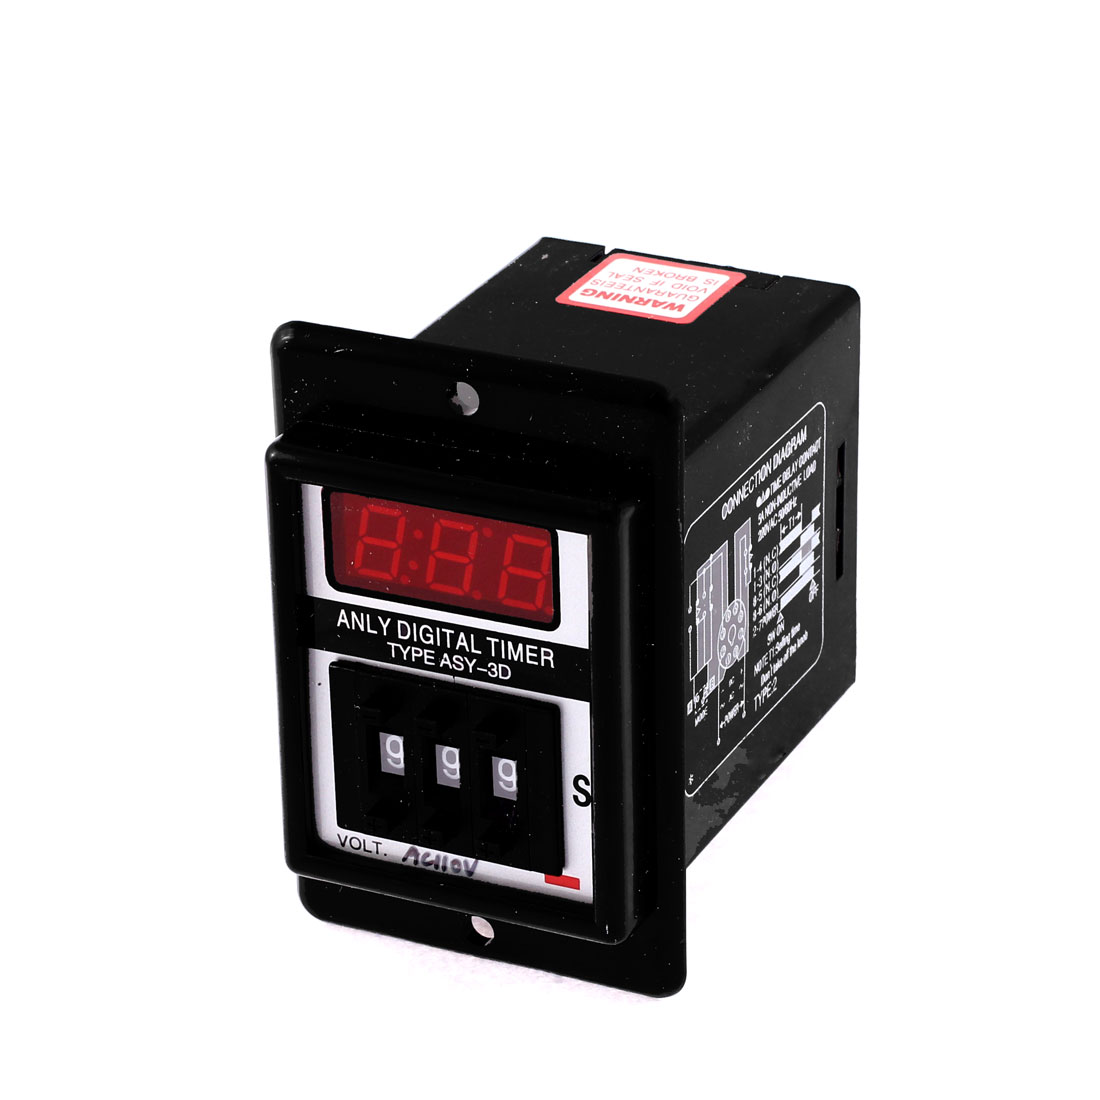 AC 110V 8 Pin 1-999 Second Digital Timer Time Delay Relay Black ASY-3D